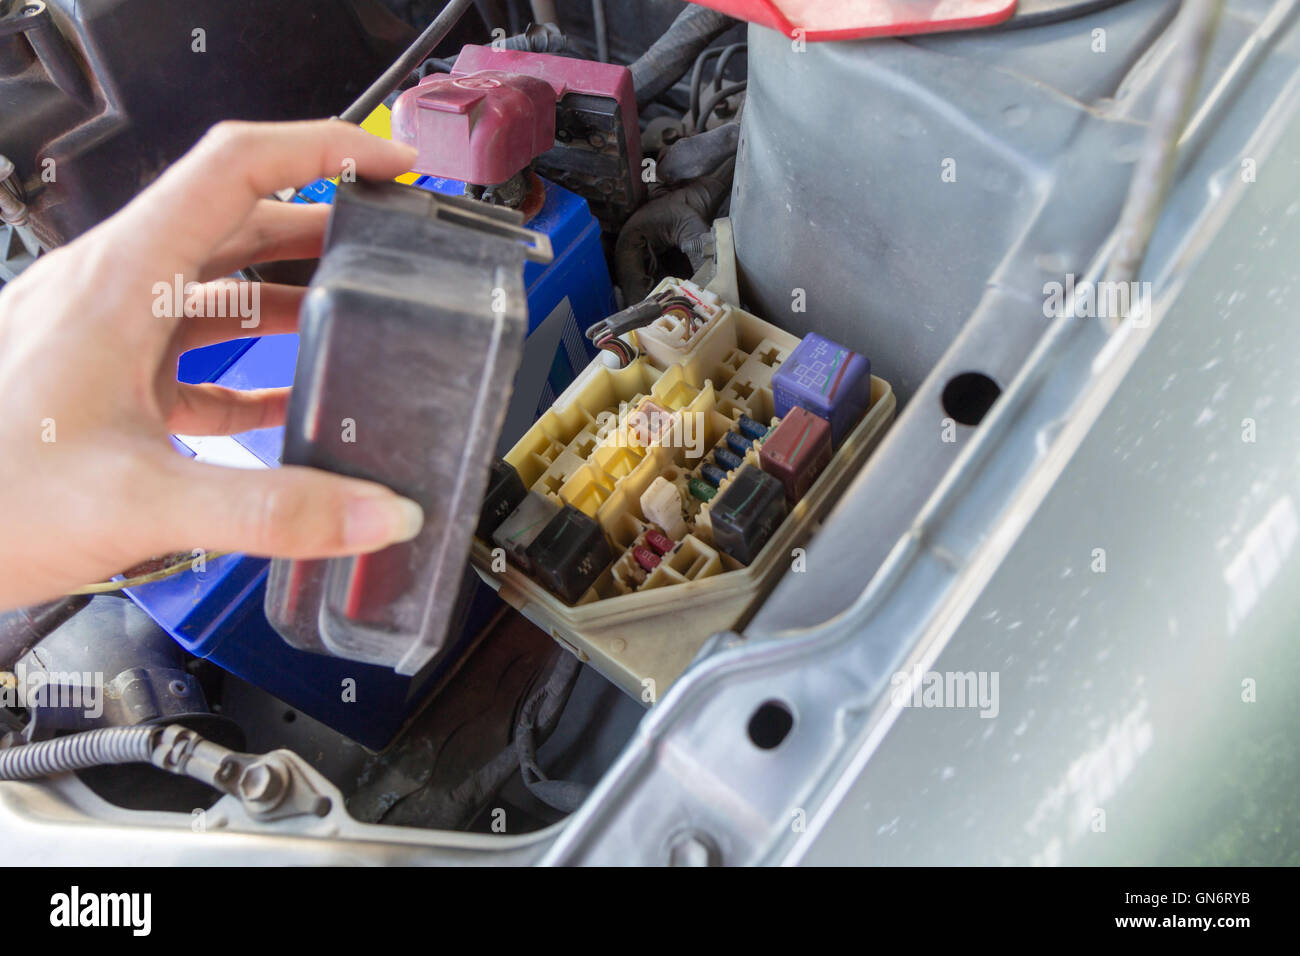 the man opening fuse box of old car GN6RYB the man opening fuse box of old car stock photo, royalty free how to open a fuse box on a 2017 ford f150 at crackthecode.co